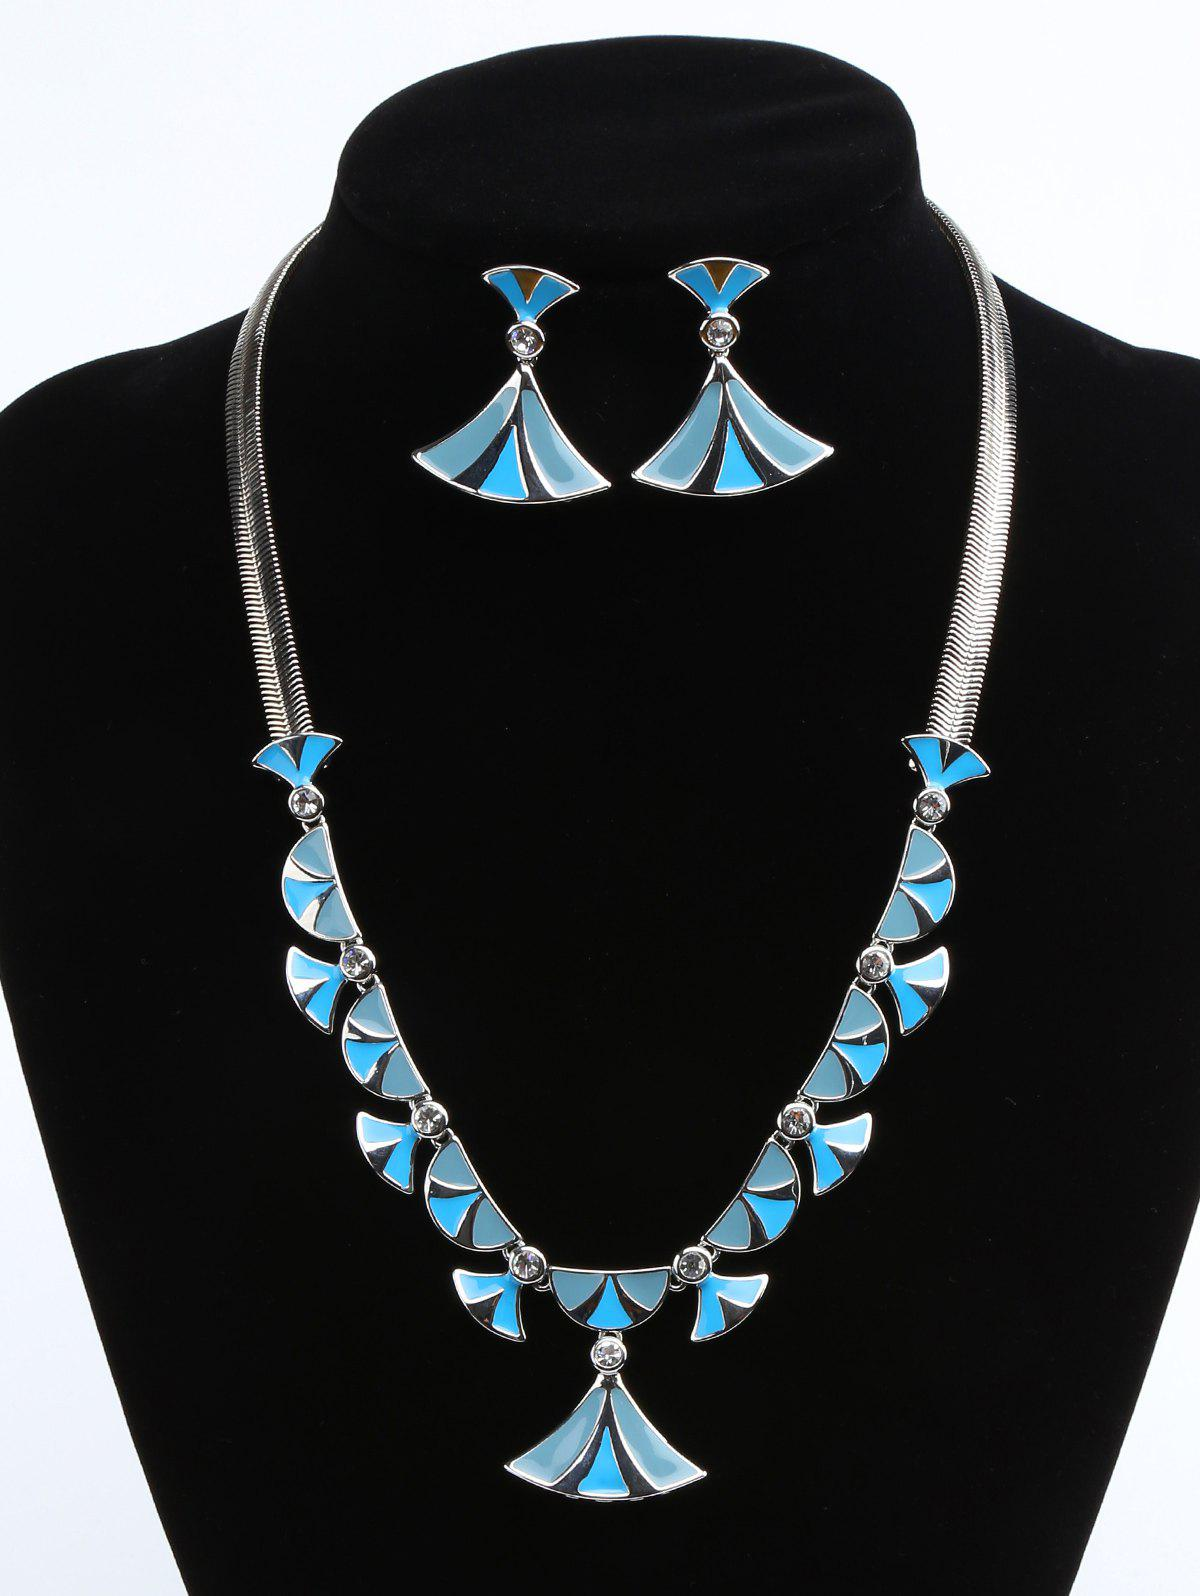 Hot Alloy Fan Shaped Faux Diamond Inlaid Pendant Necklace and Drop Earrings